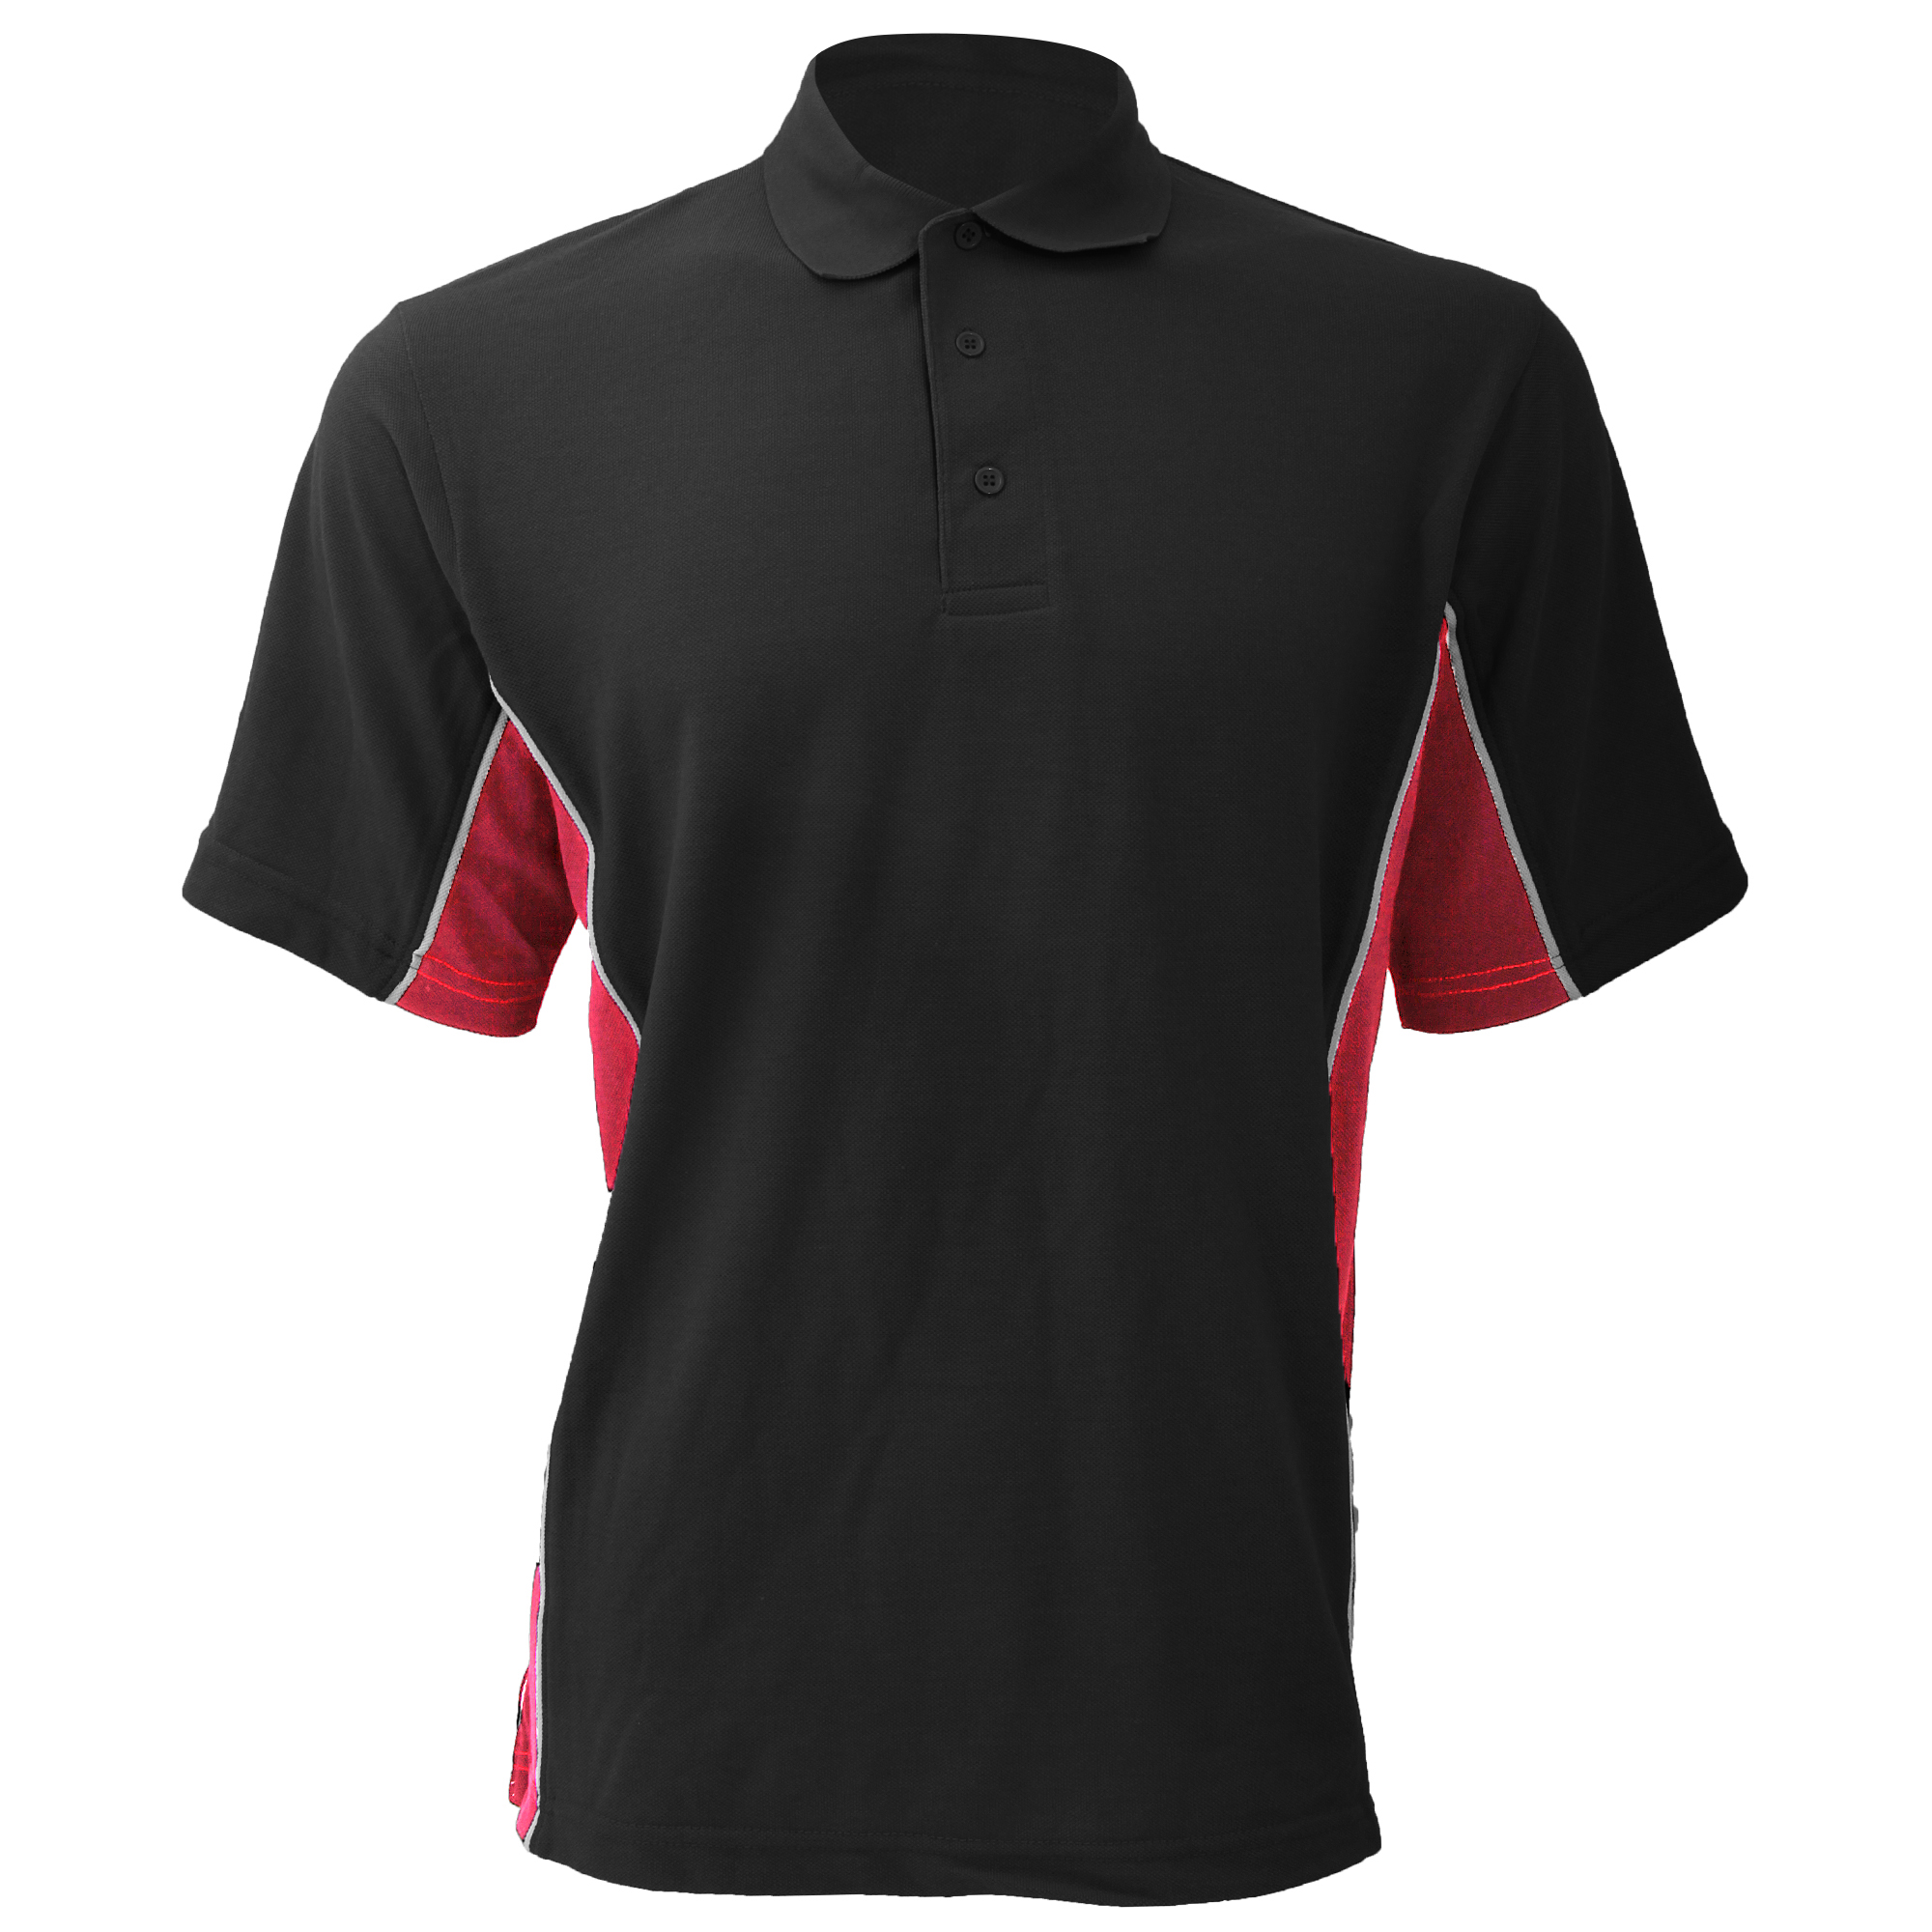 Gamegear® Mens Track Pique Short Sleeve Polo Shirt Top (L) (Black/Red/White)